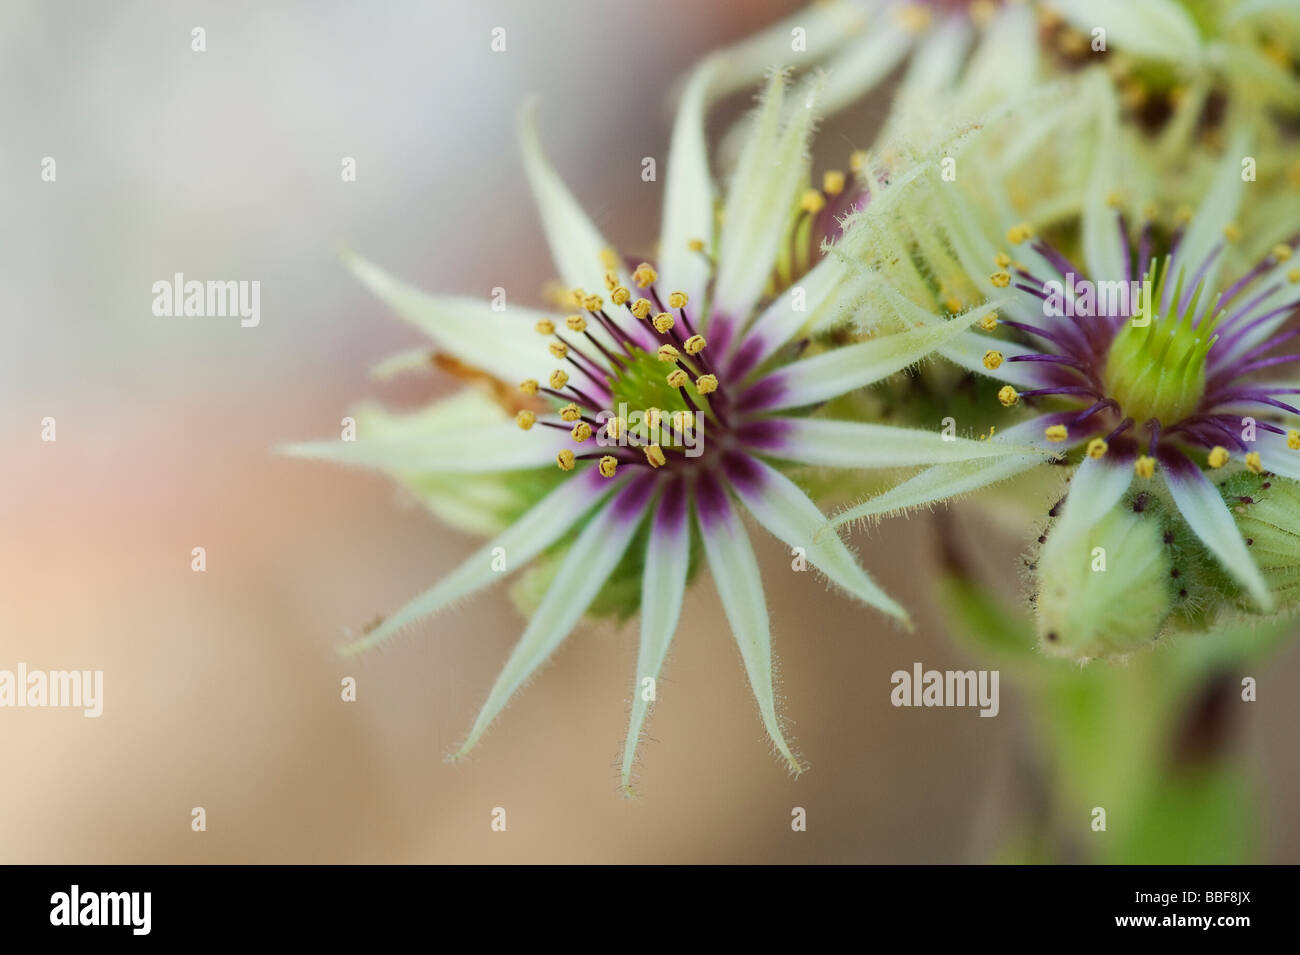 Sempervivum Grandiflorum flowers - Stock Image